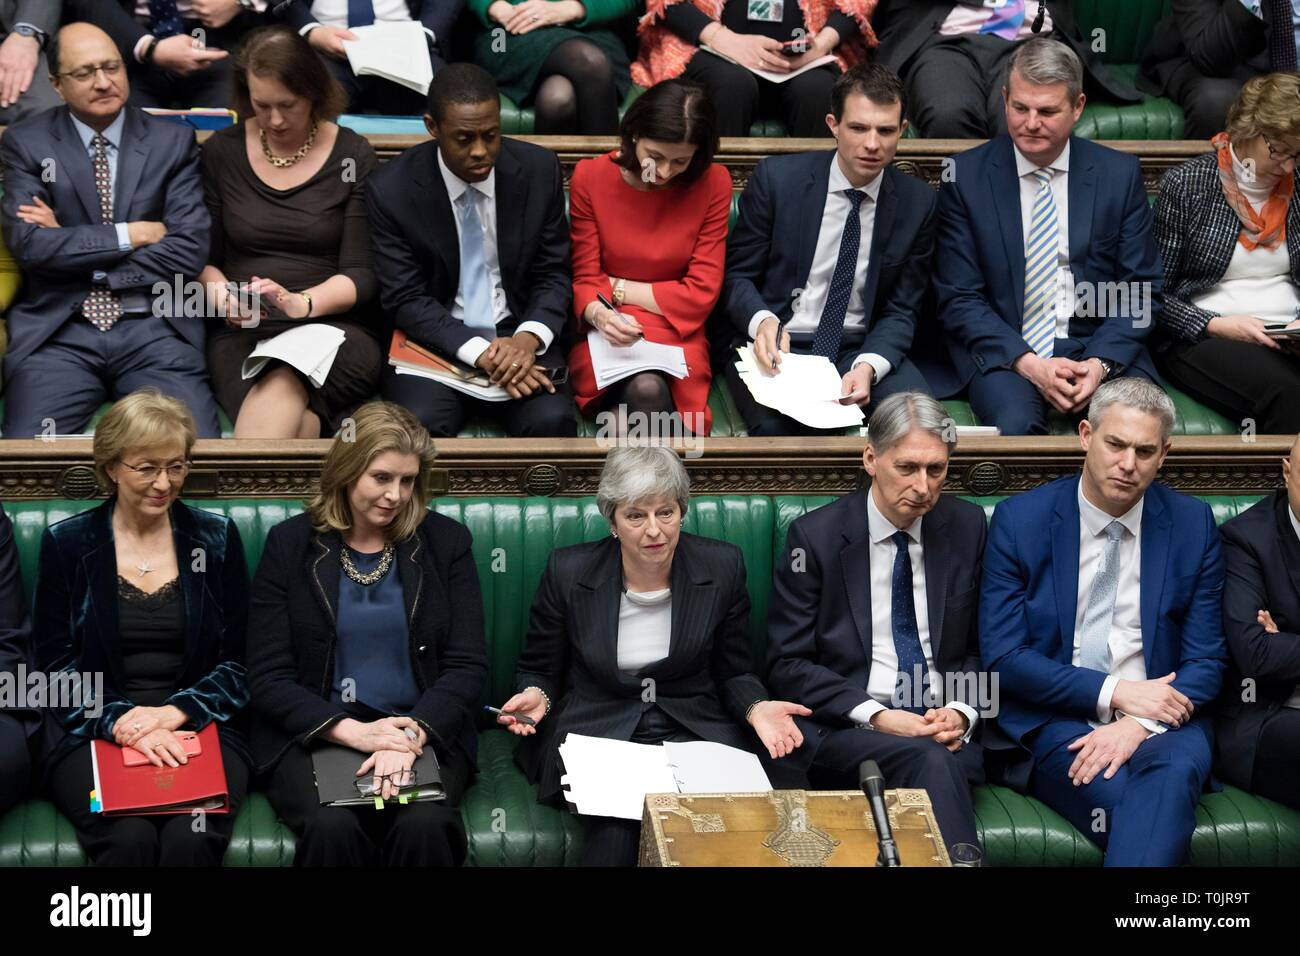 London, UK. 20th Mar, 2019. British Prime Minister Theresa May (C, Front) attends the Prime Minister's Question Time in the House of Commons in London, Britain, on March 20, 2019. Theresa May confirmed Wednesday she has written to the European Union seeking to delay Britain's departure from the bloc until June 30. Credit: UK Parliament/Jessica Taylor/Xinhua/Alamy Live News Stock Photo